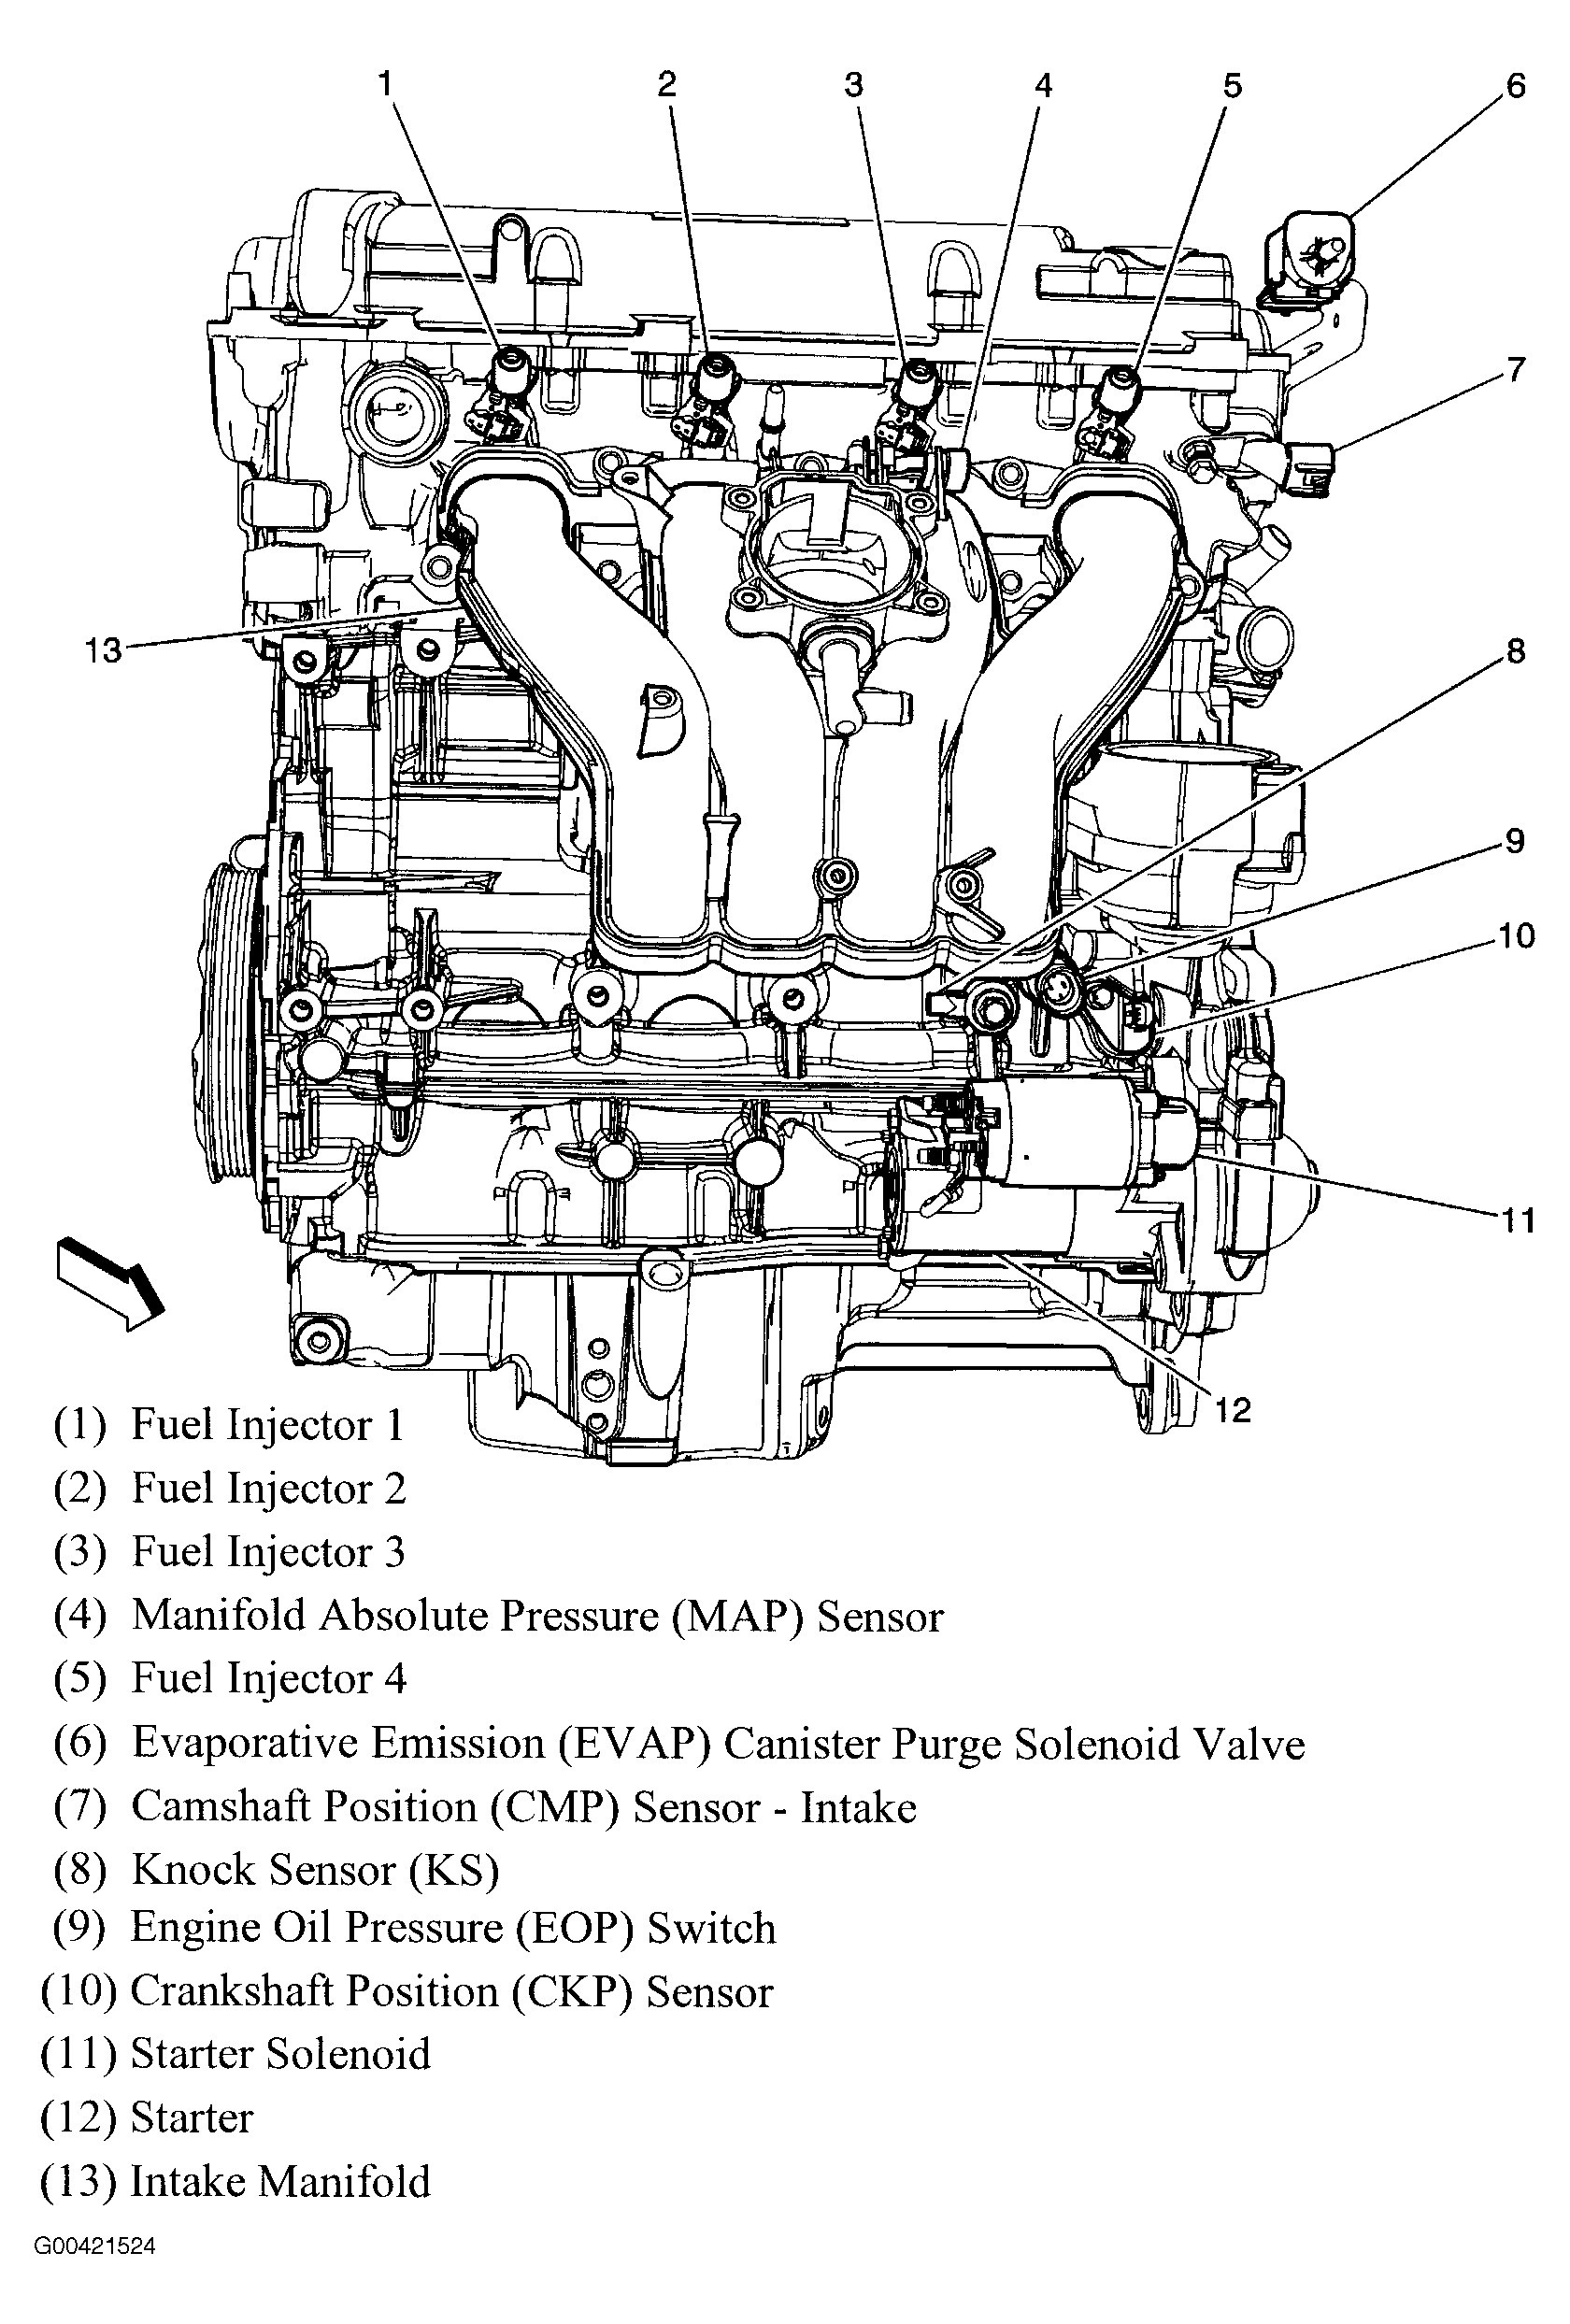 hight resolution of duramax sel wiring diagram manual e book diagram likewise 6 6 duramax engine diagram on sel